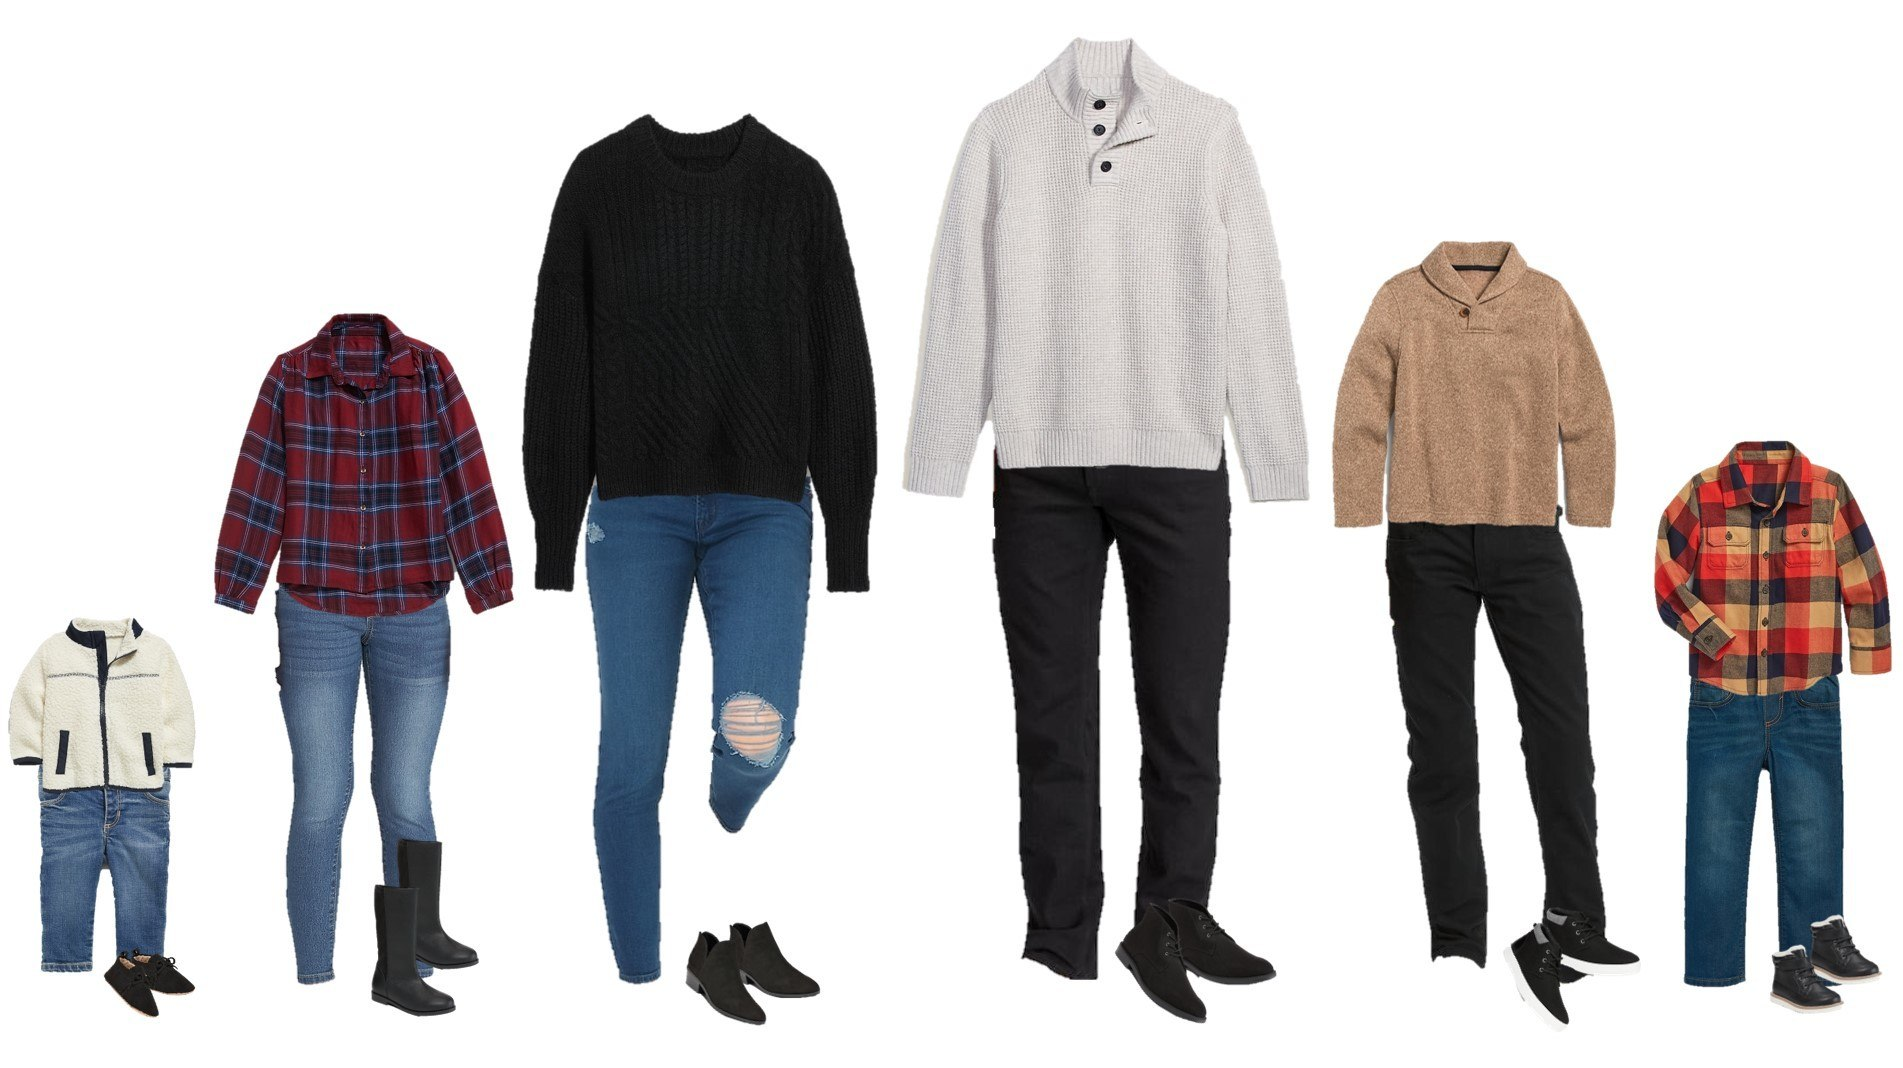 Casual Family Holiday Outfits - plaid shirts, sweaters and jeans